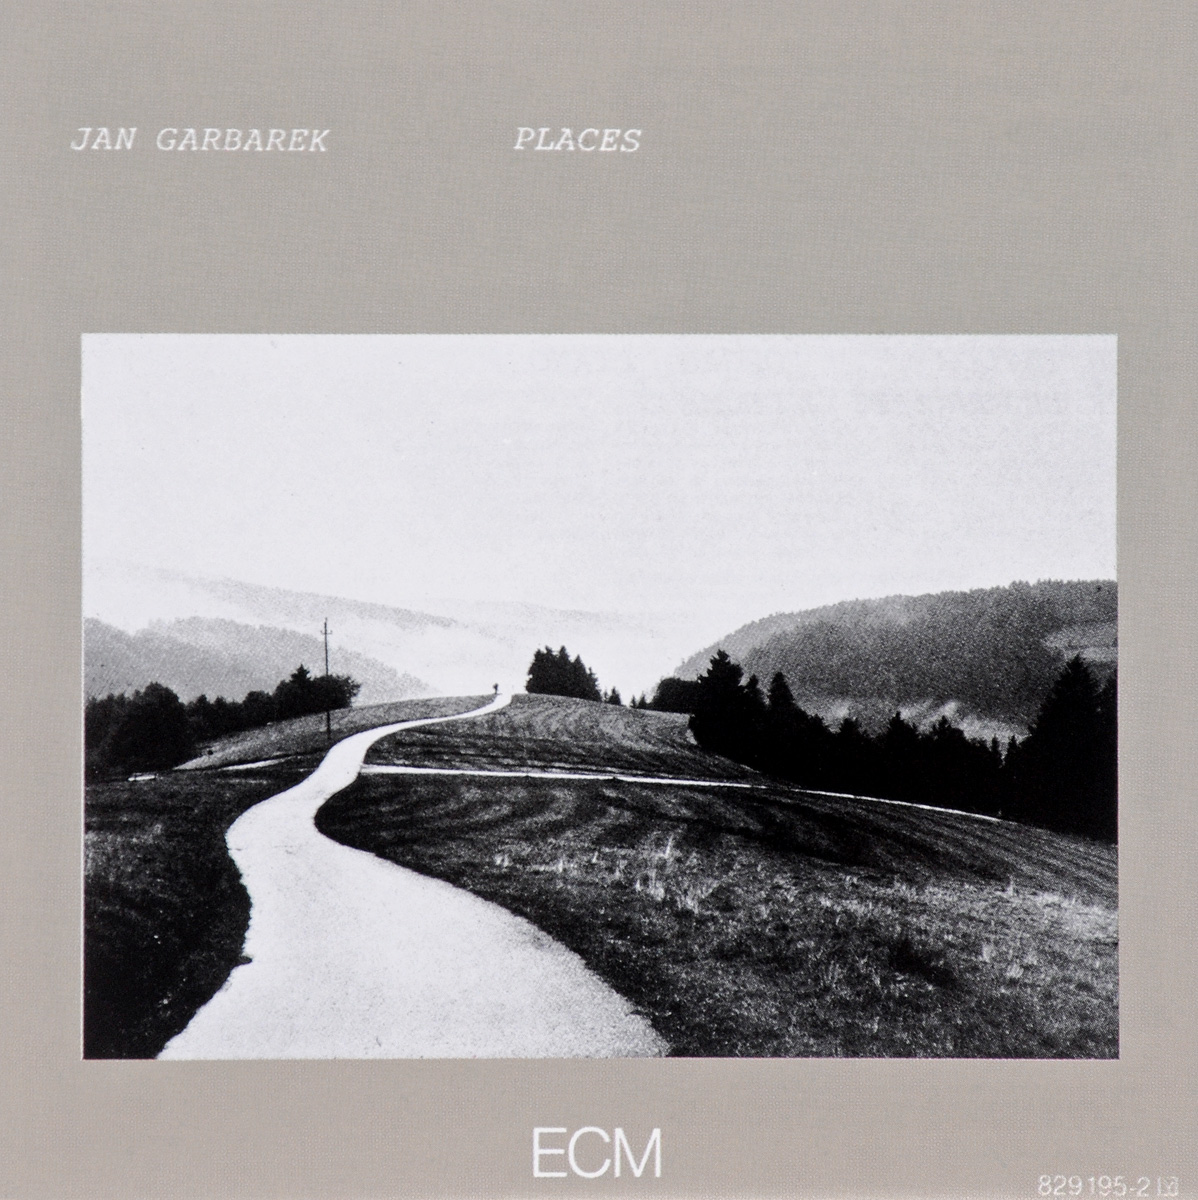 Ян Гарбарек,Билл Коннорс,Джон Тэйлор,Джек Де Джонетт Jan Garbarek. Places jan garbarek jan garbarek the hilliard ensemble jan garbarek the hilliard ensemble officium 2 lp